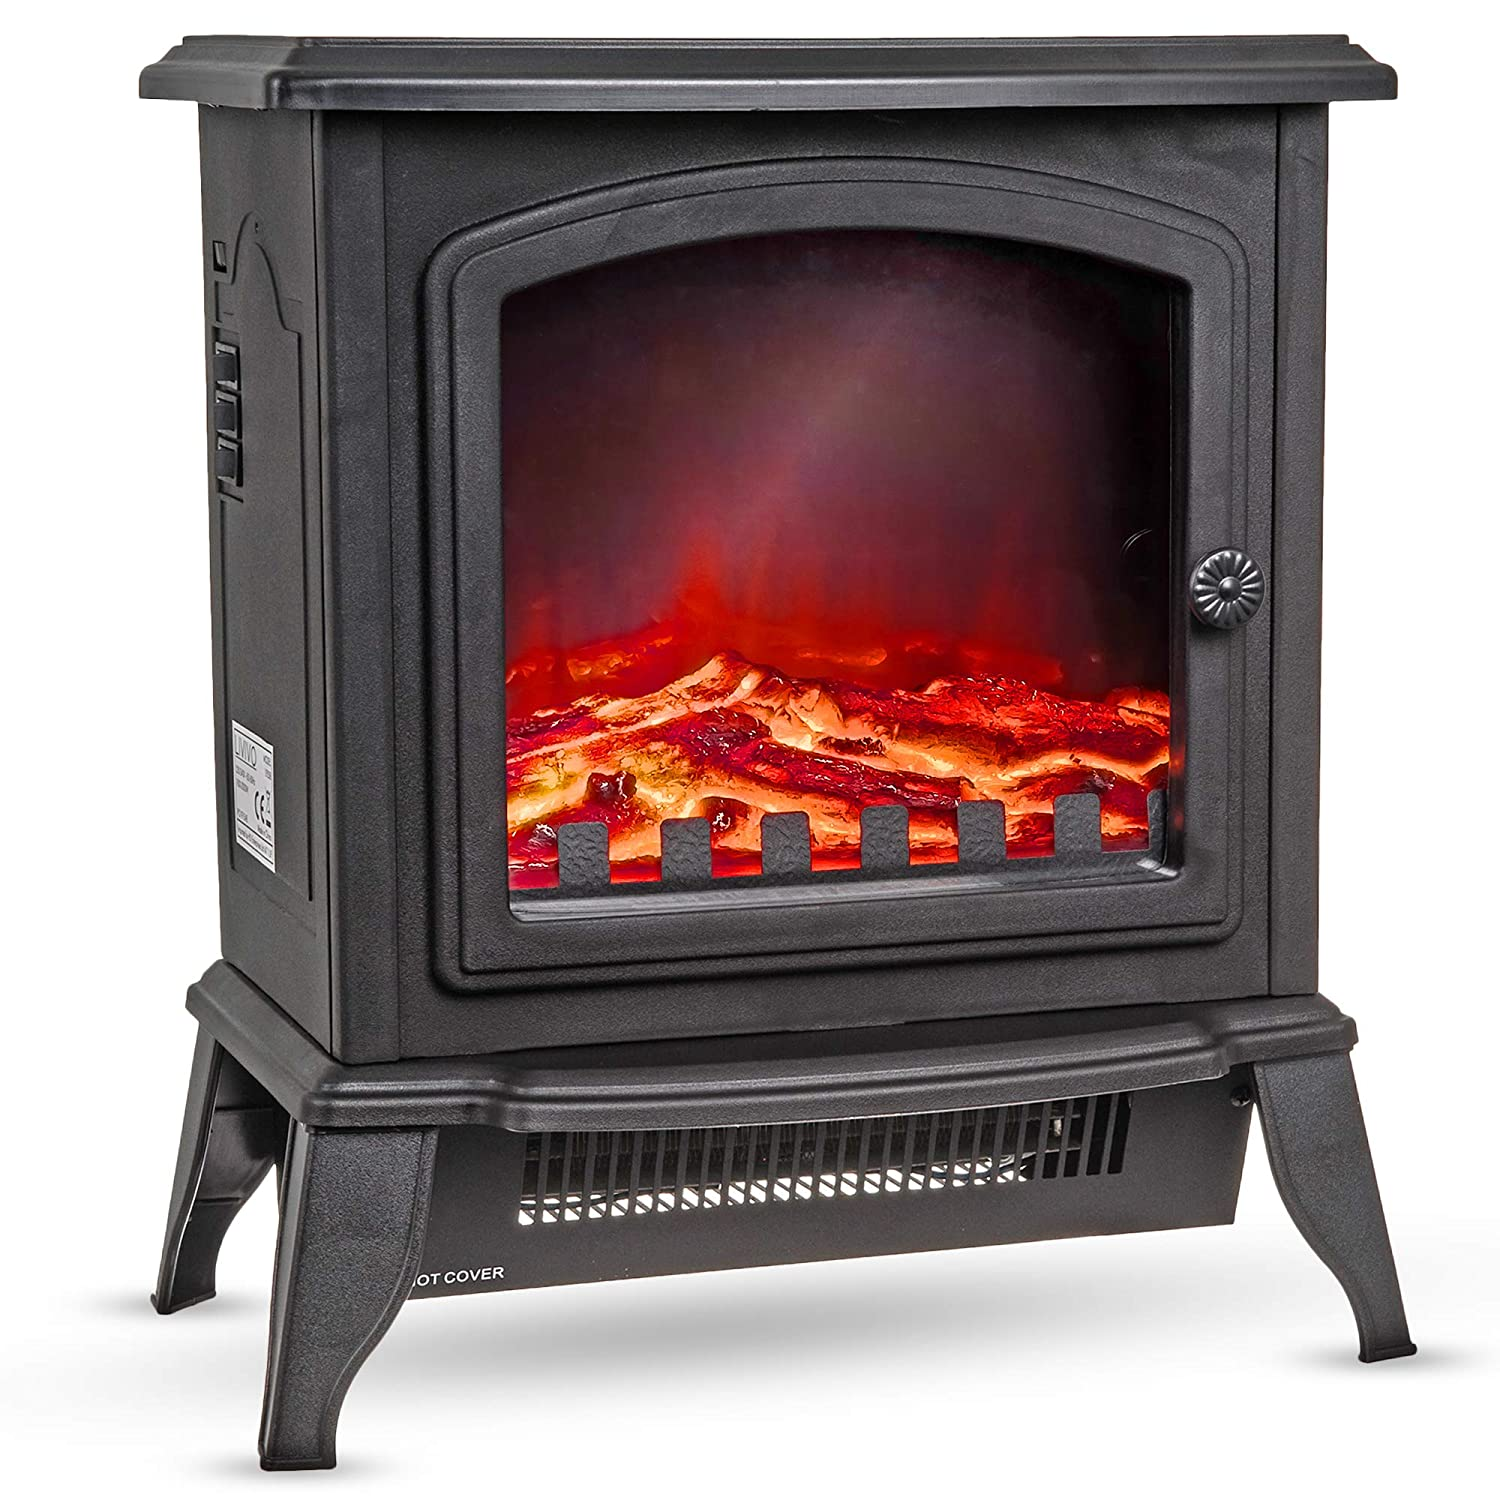 Livivo New Log Effect Electric Stove Fire 2000w Independent Light And Heat Controls Automatic Safety Cut Out Compact